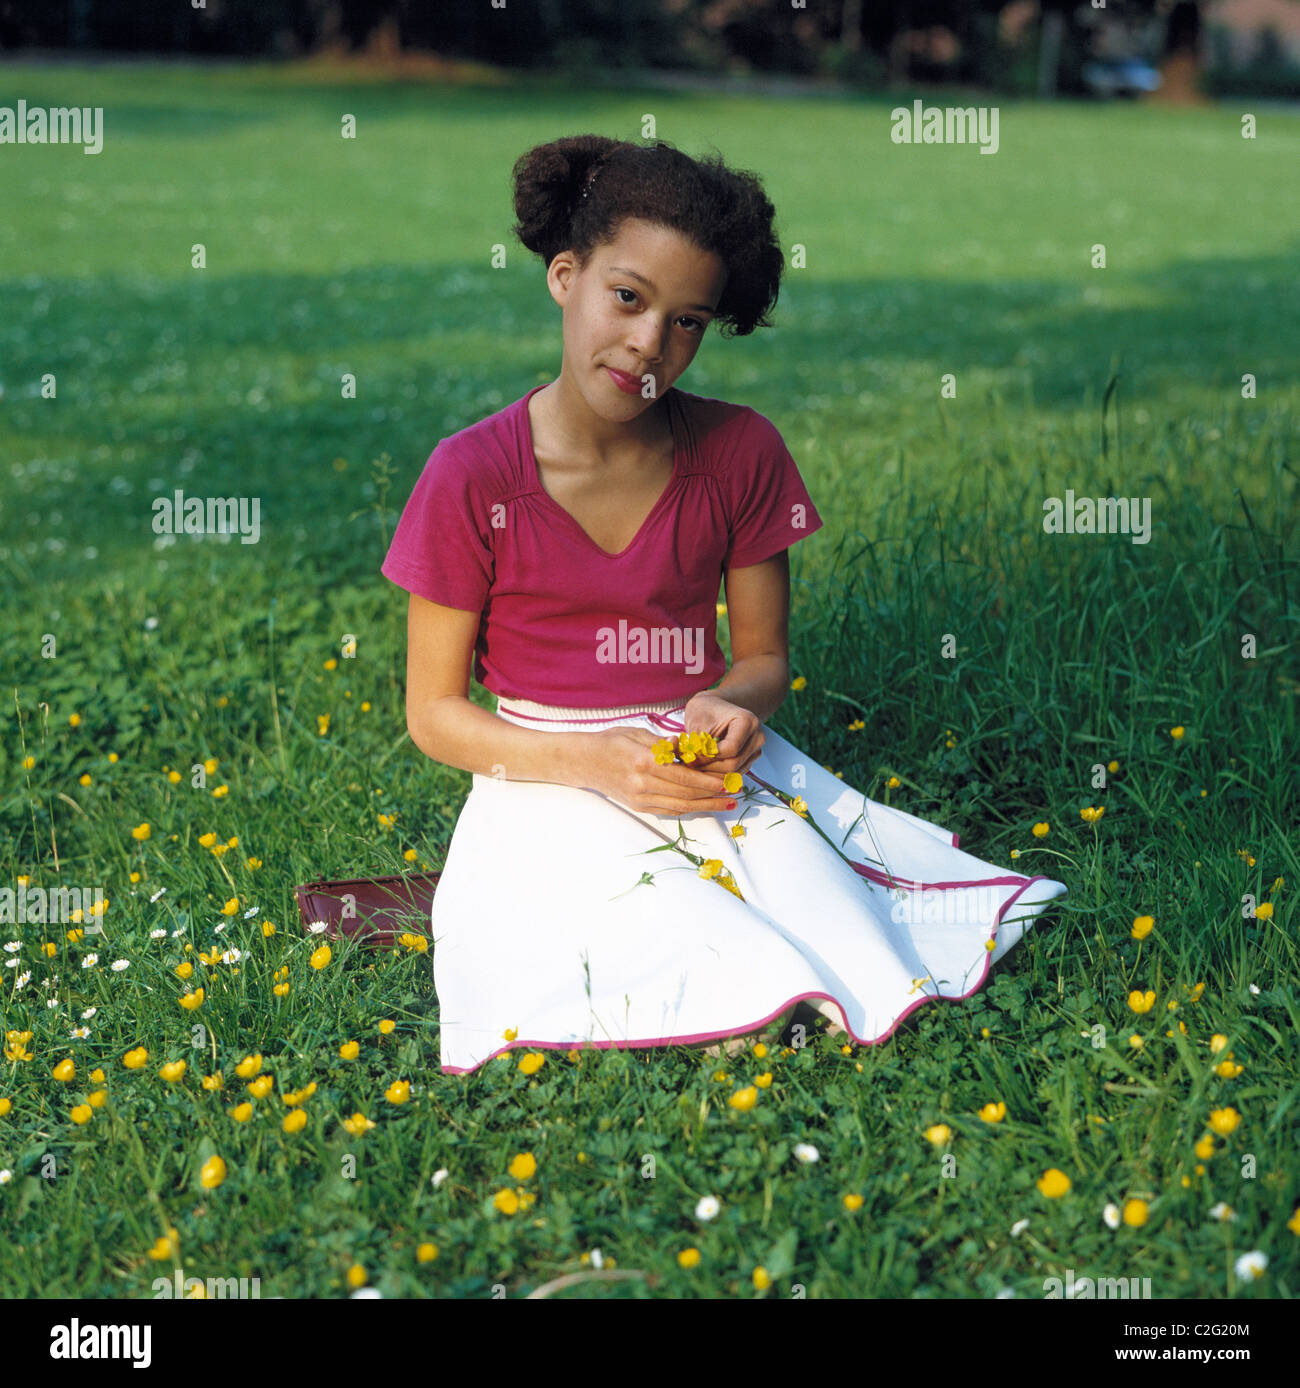 Eighties, people, child, young girl crouching on a flower meadow, portrait, aged 10 to 14 years, middle long hair, - Stock Image